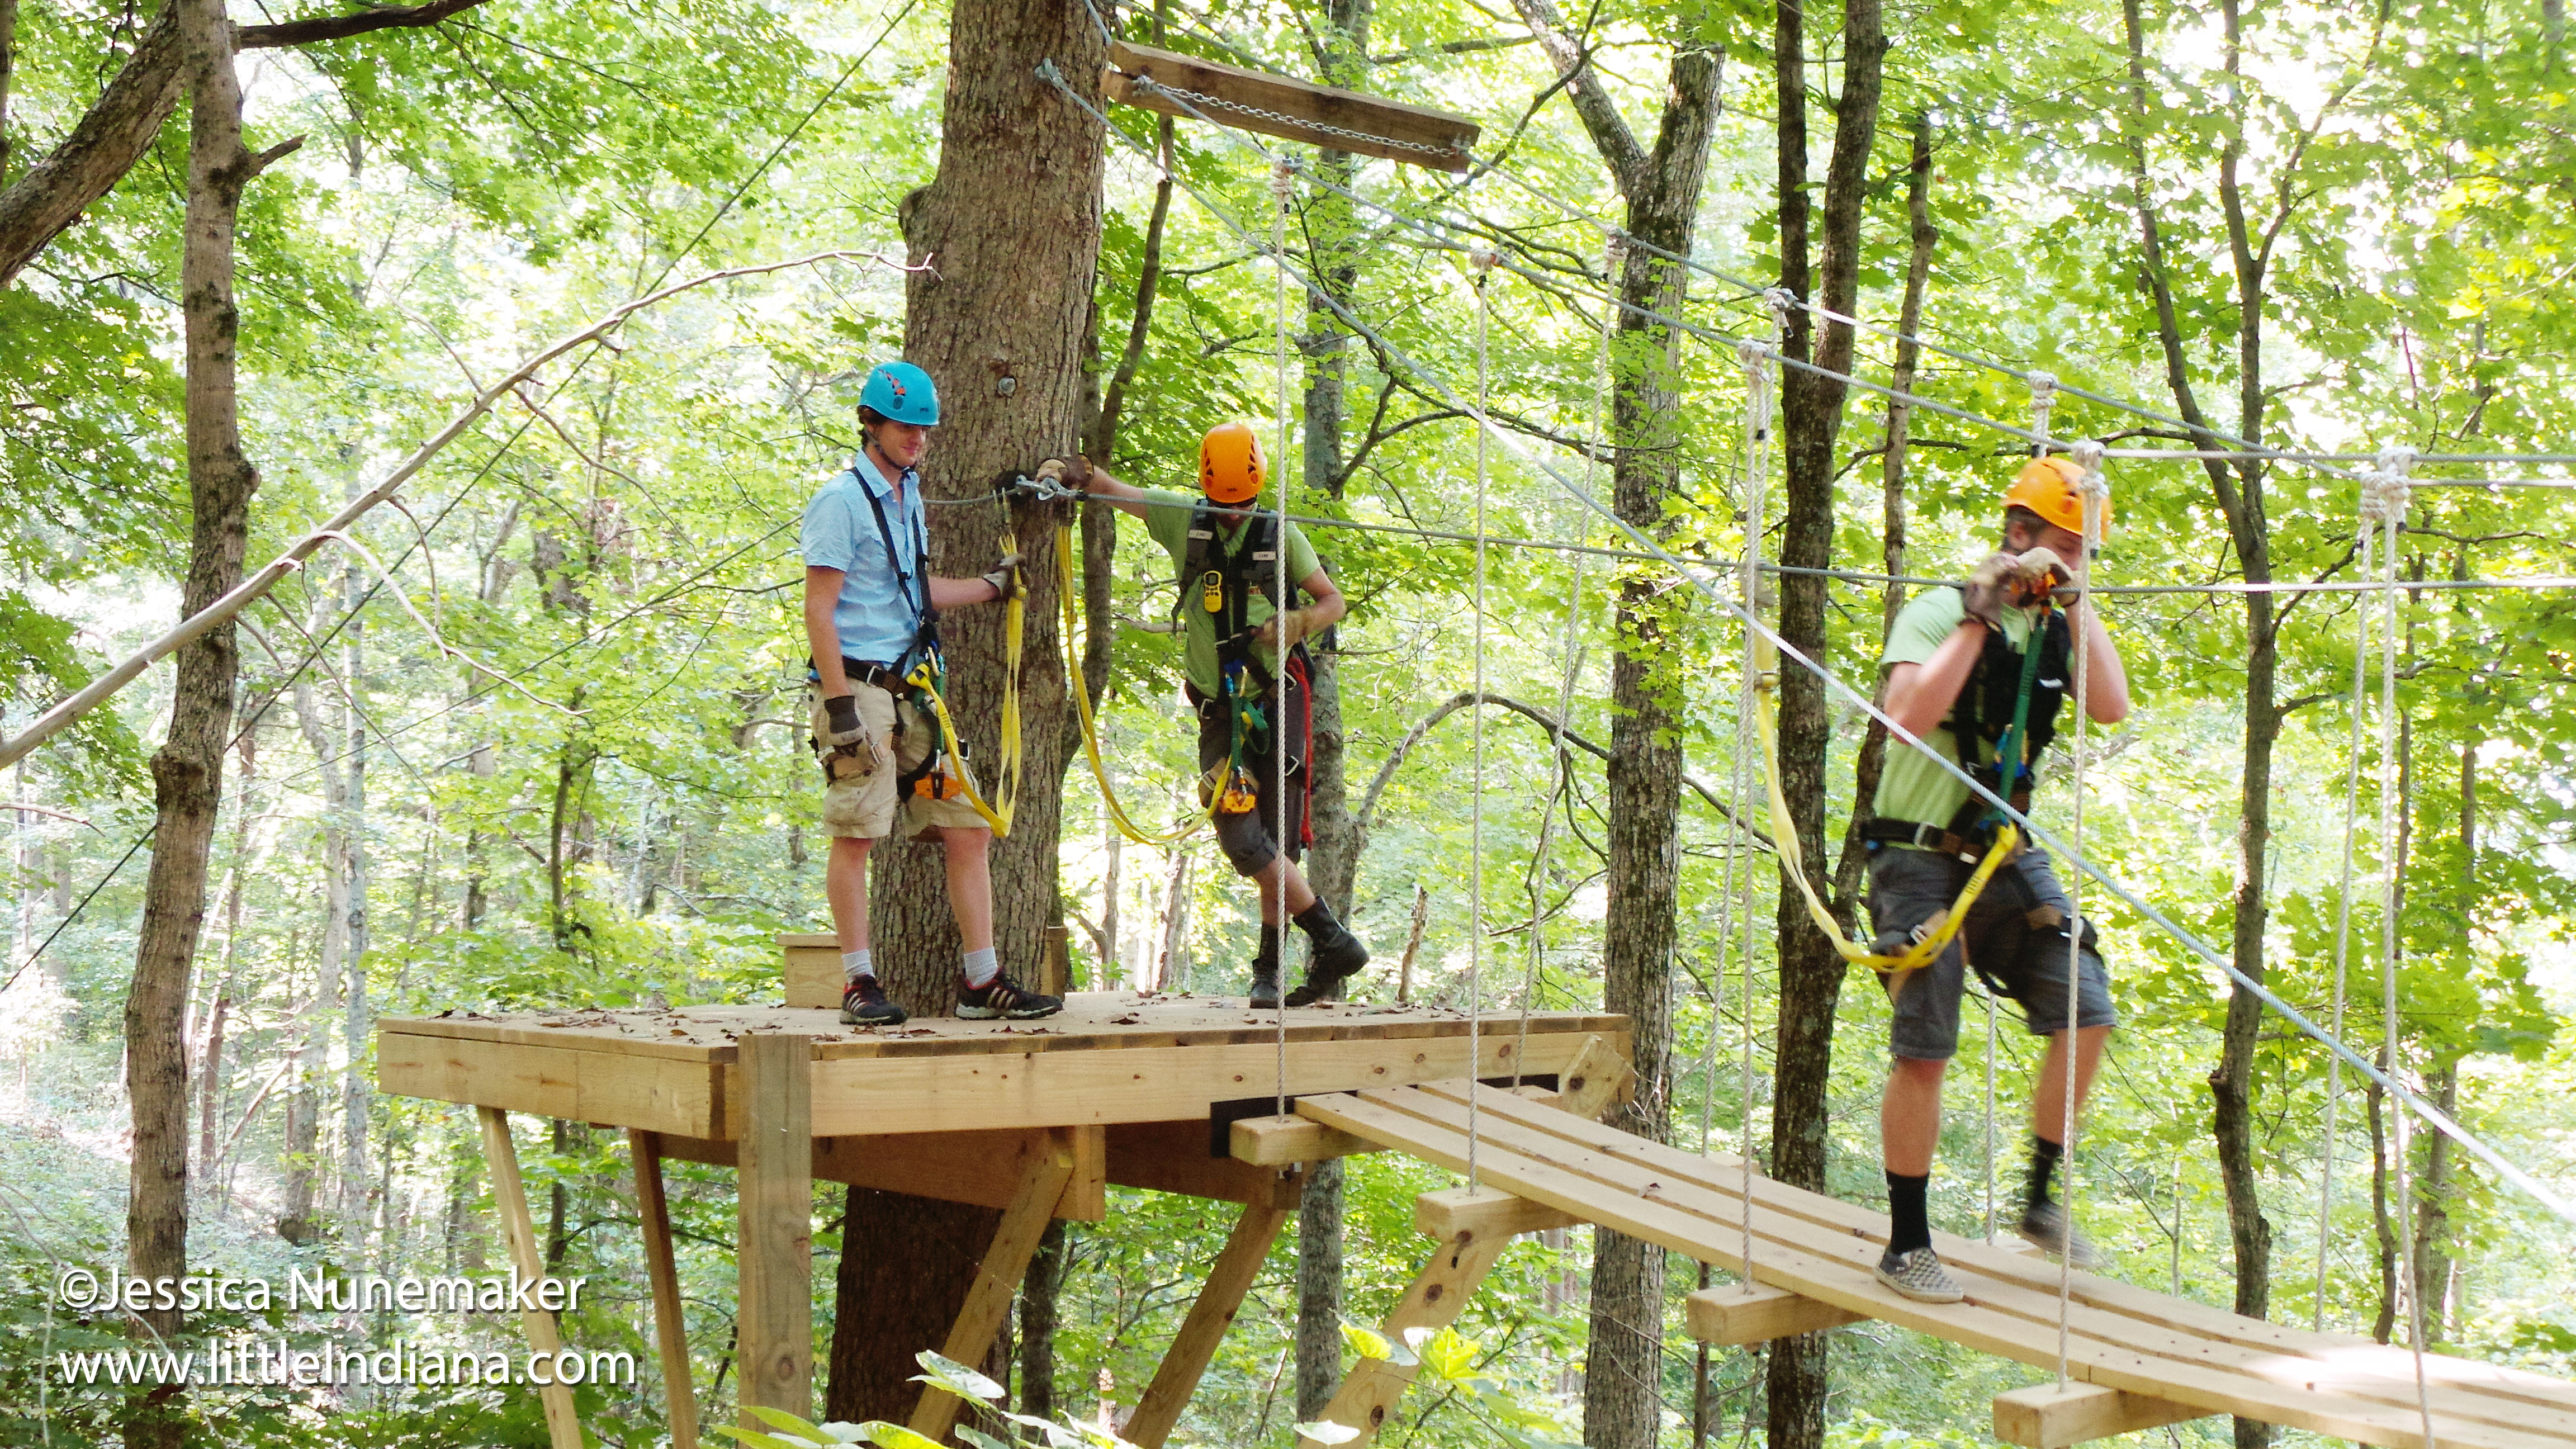 squire boon caverns zipline adventure in mauckport indiana with